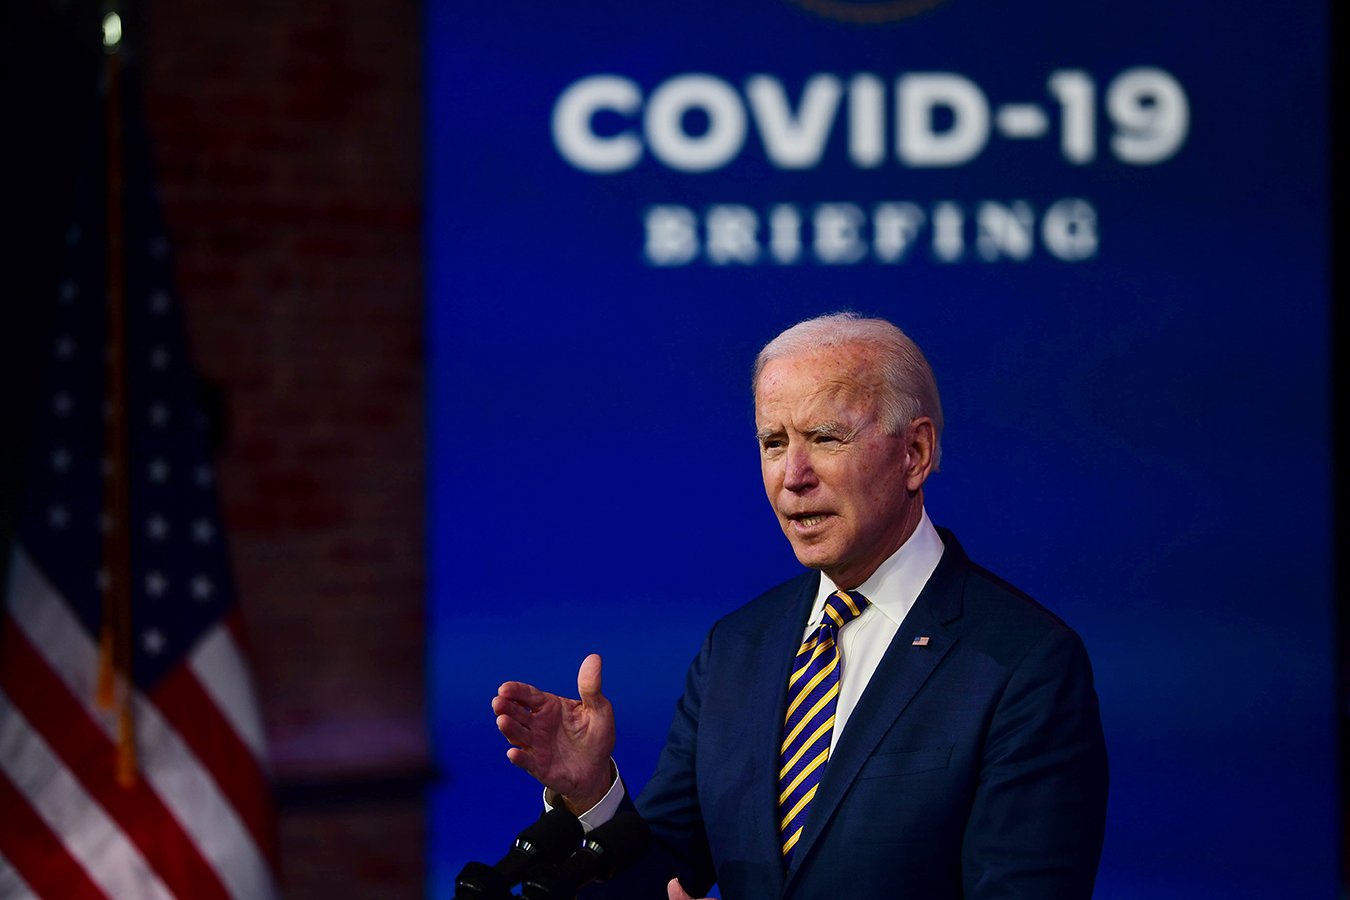 Health Issues Carried Weight on the Campaign Trail. What Could Biden Do in His First 100 Days?